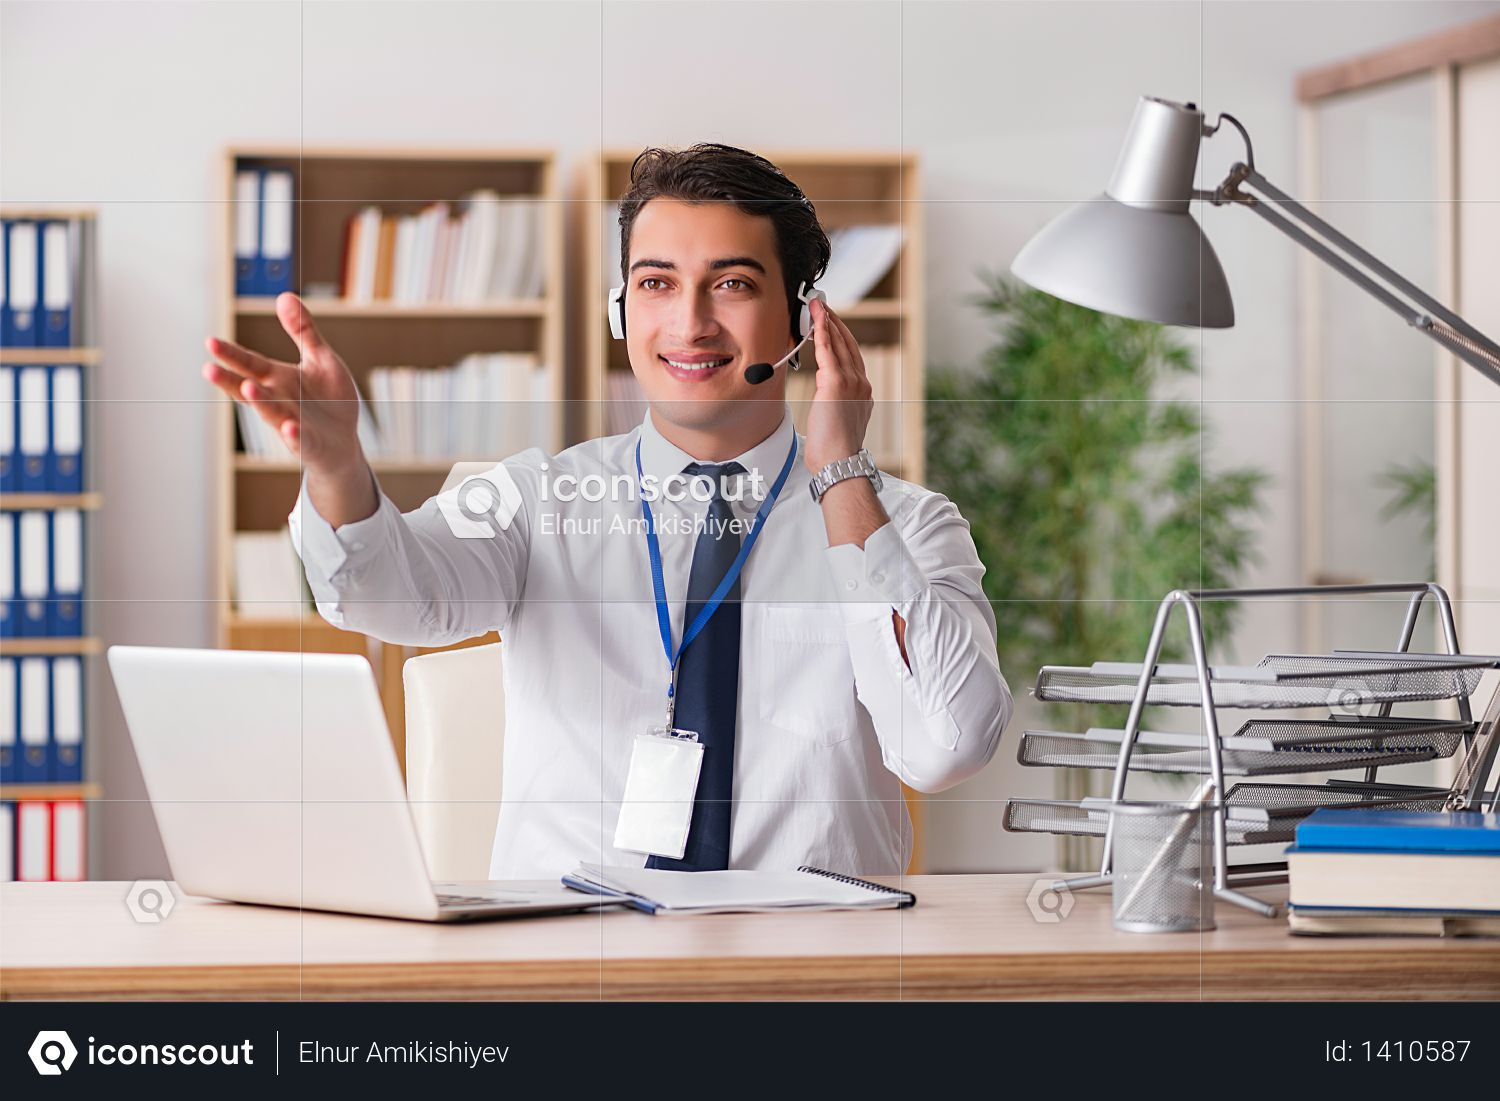 Handsome customer service clerk with headset Photo